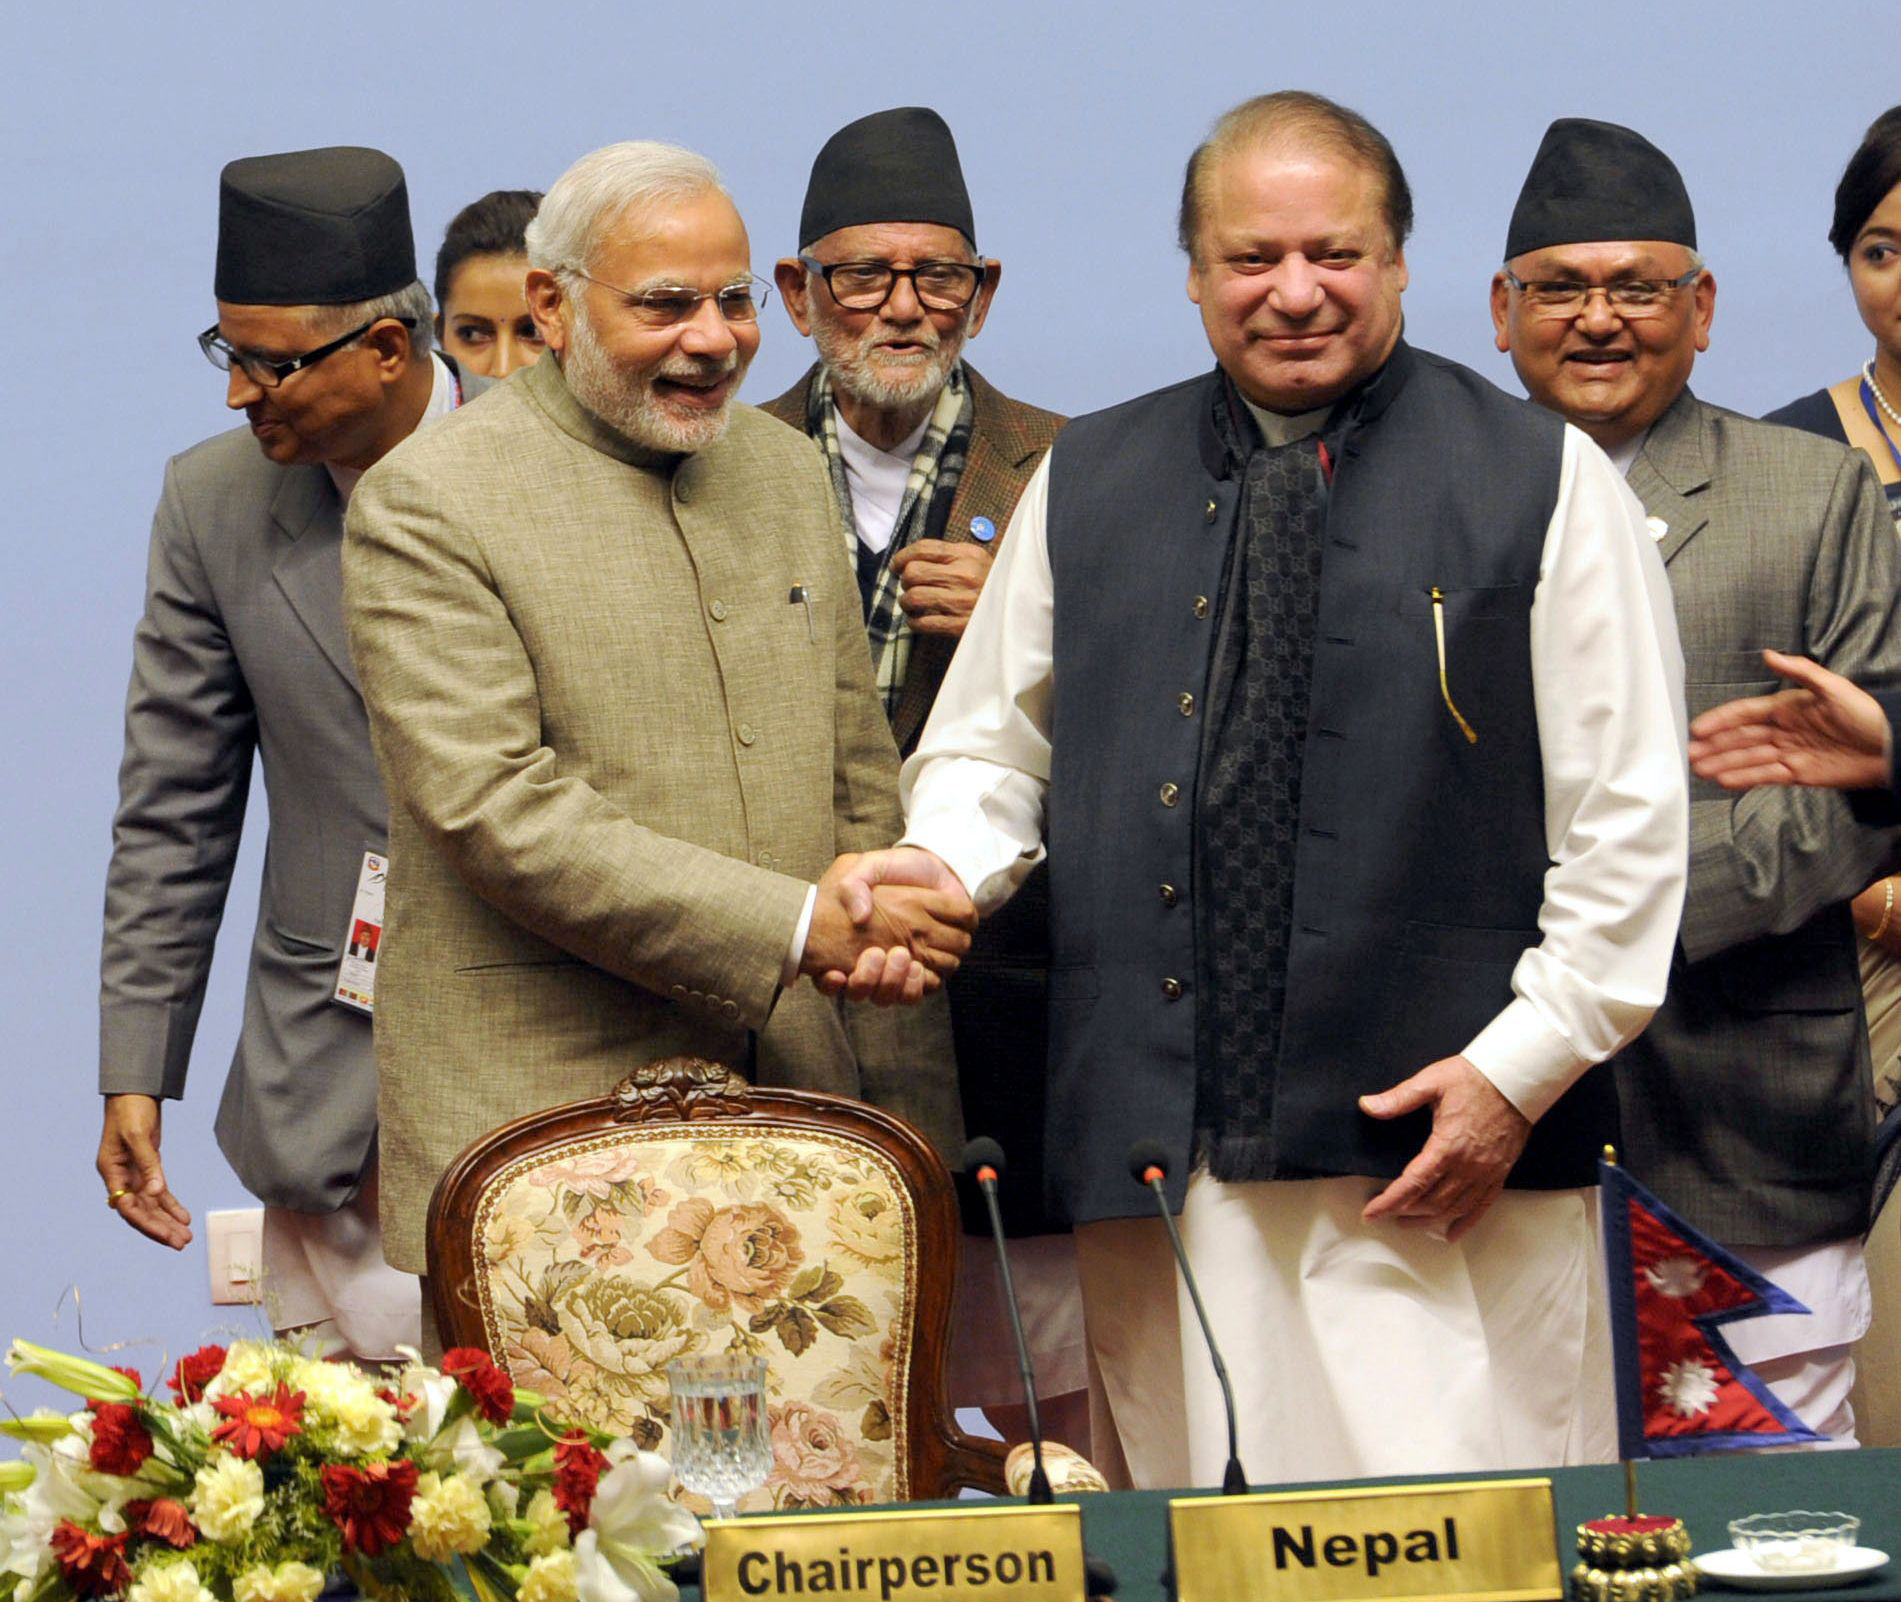 In this handout photograph received from the Indian Press Information Bureau (PIB) on November 27, 2014, Indian Prime Minister Narendra Modi (L) shakes hands with Prime Minister Nawaz Sharif at the 18th SAARC Summit in the Nepalese capital Kathmandu.  PHOTO: AFP